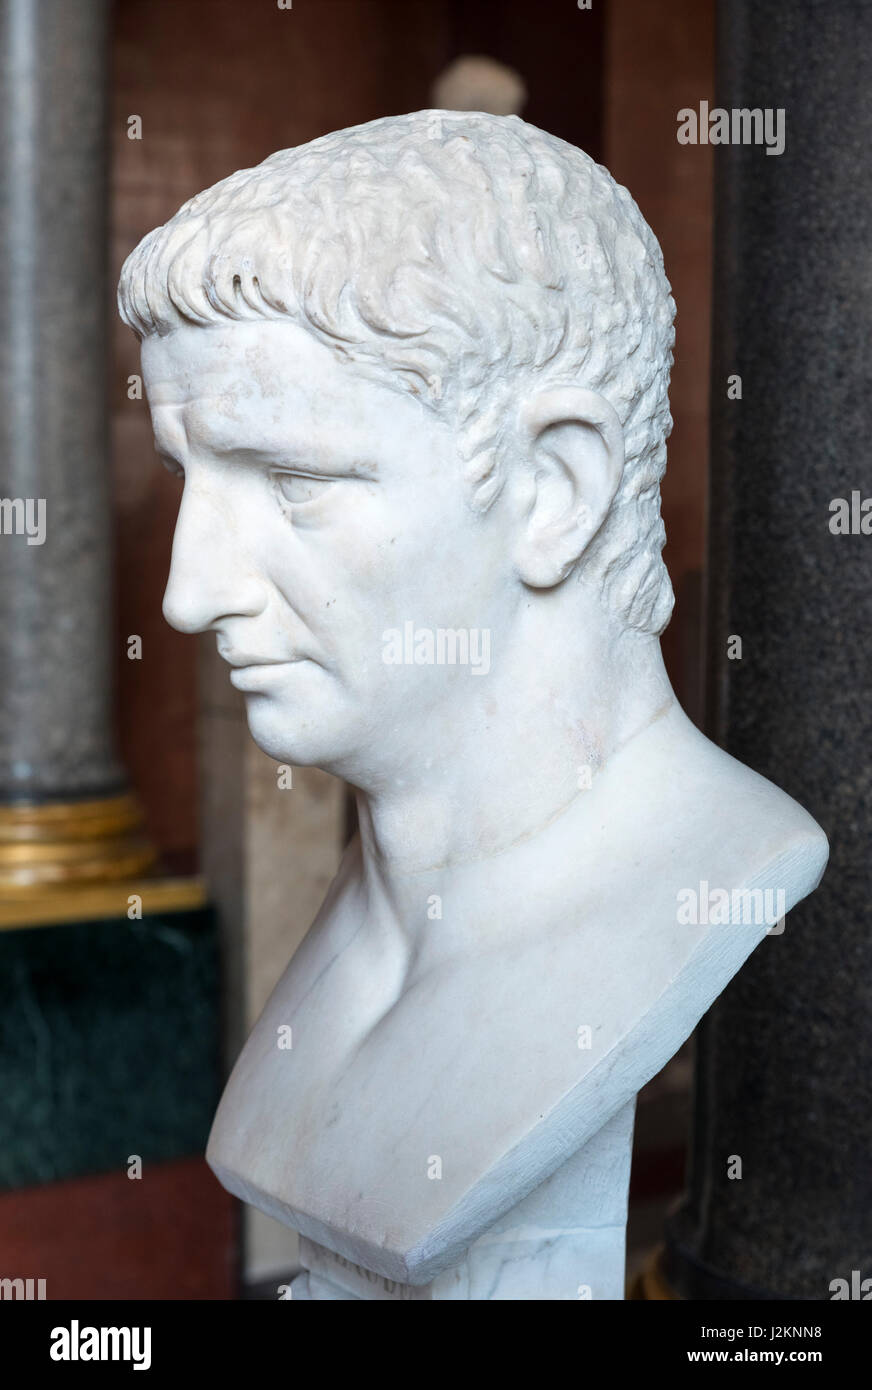 Claudius. Marble bust of the Emperor Claudius (10 BC – 54 AD), fourth Emperor of the Roman Empire. - Stock Image